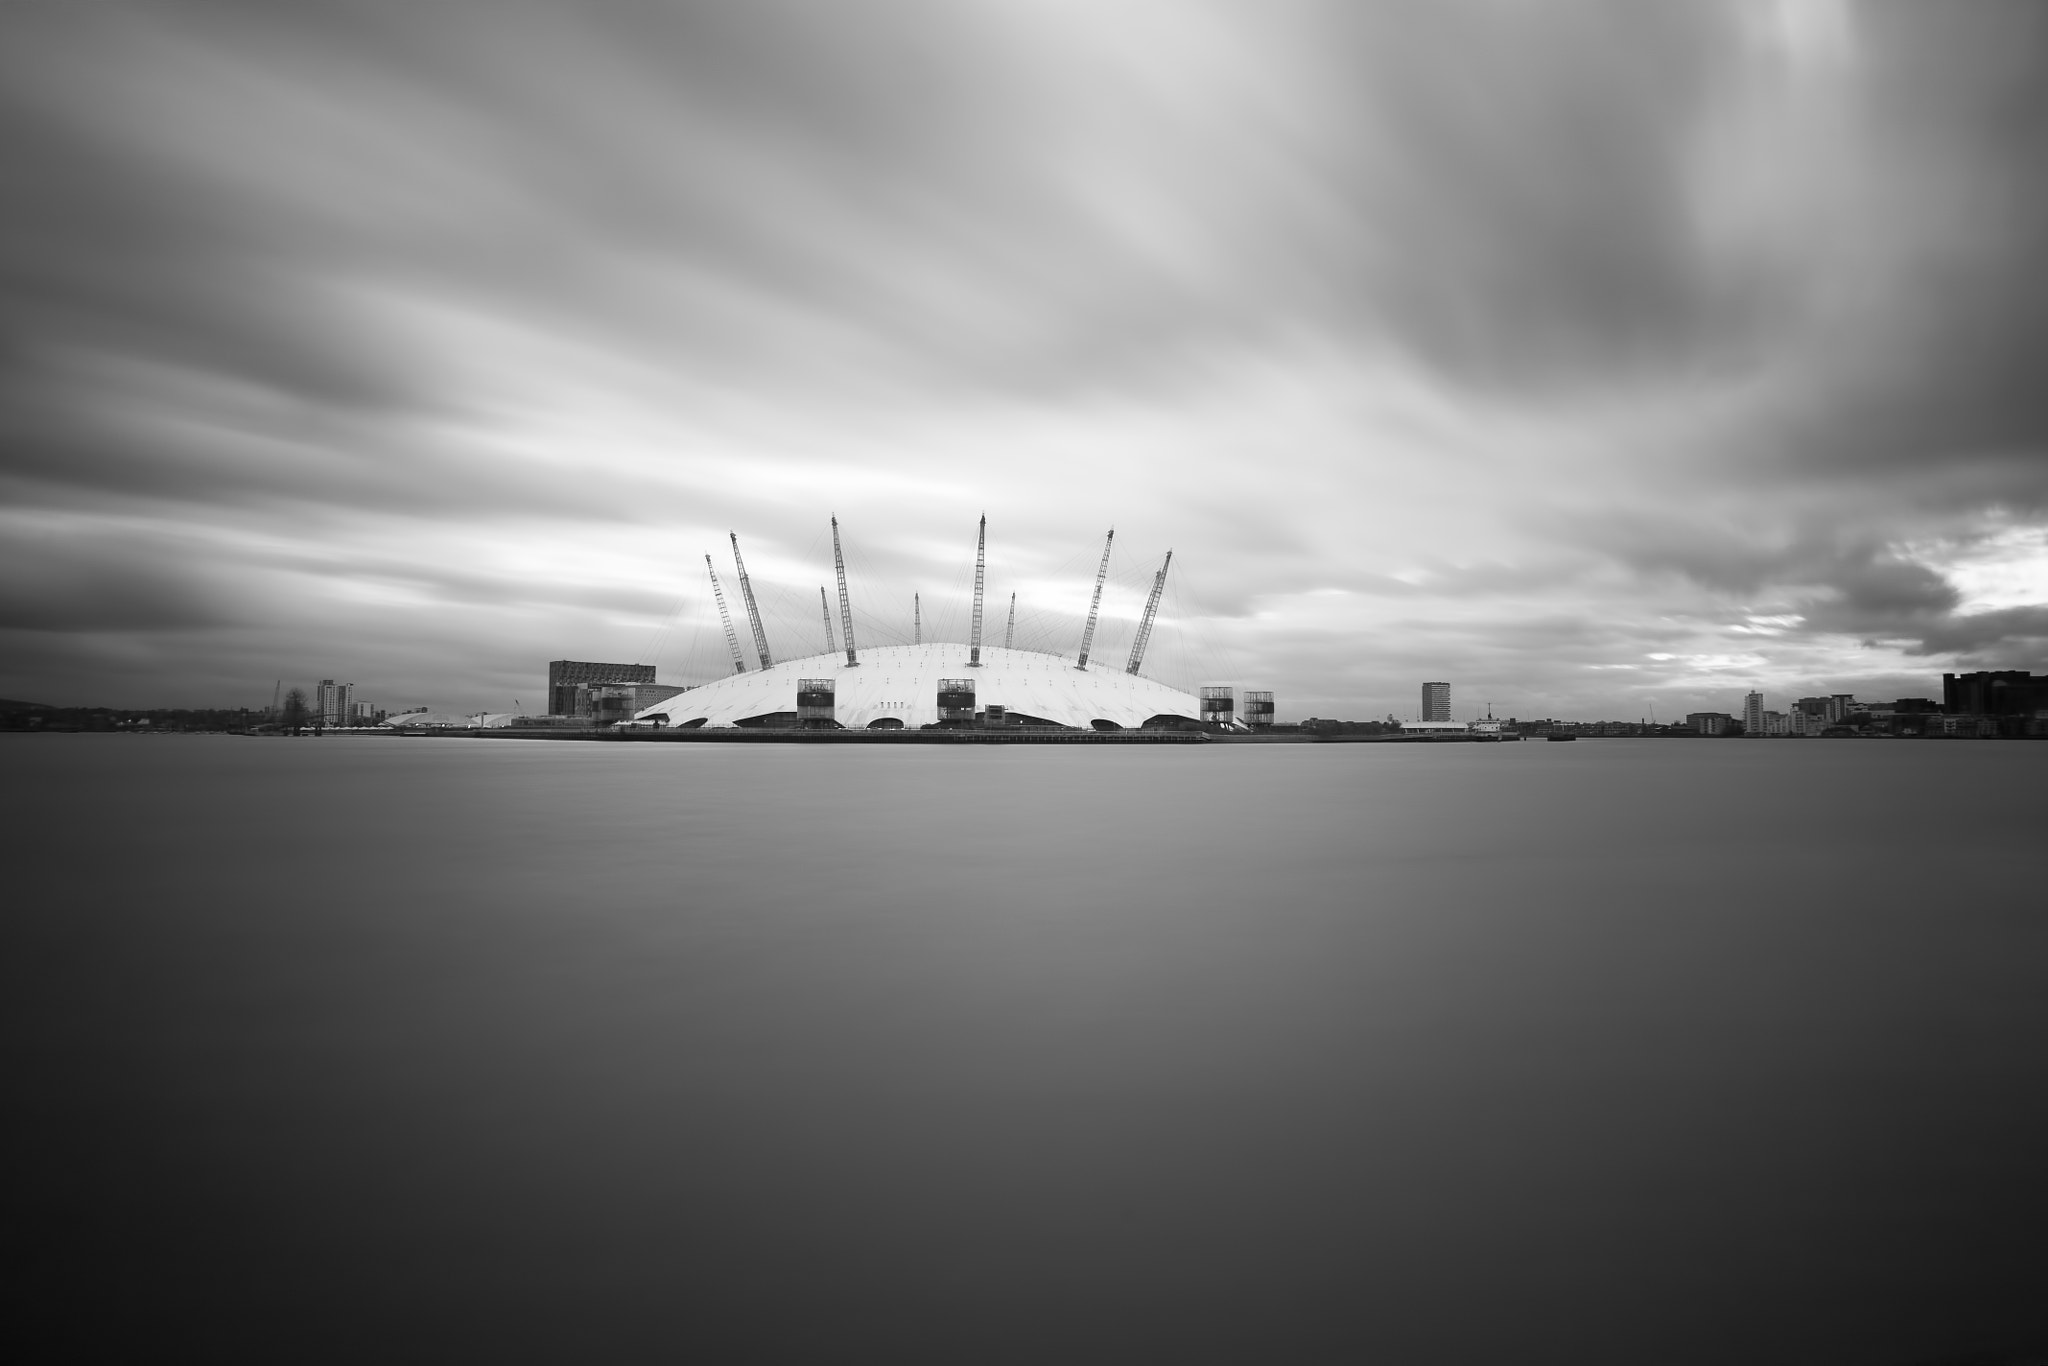 Photograph o2 arena by Dean Bedding on 500px